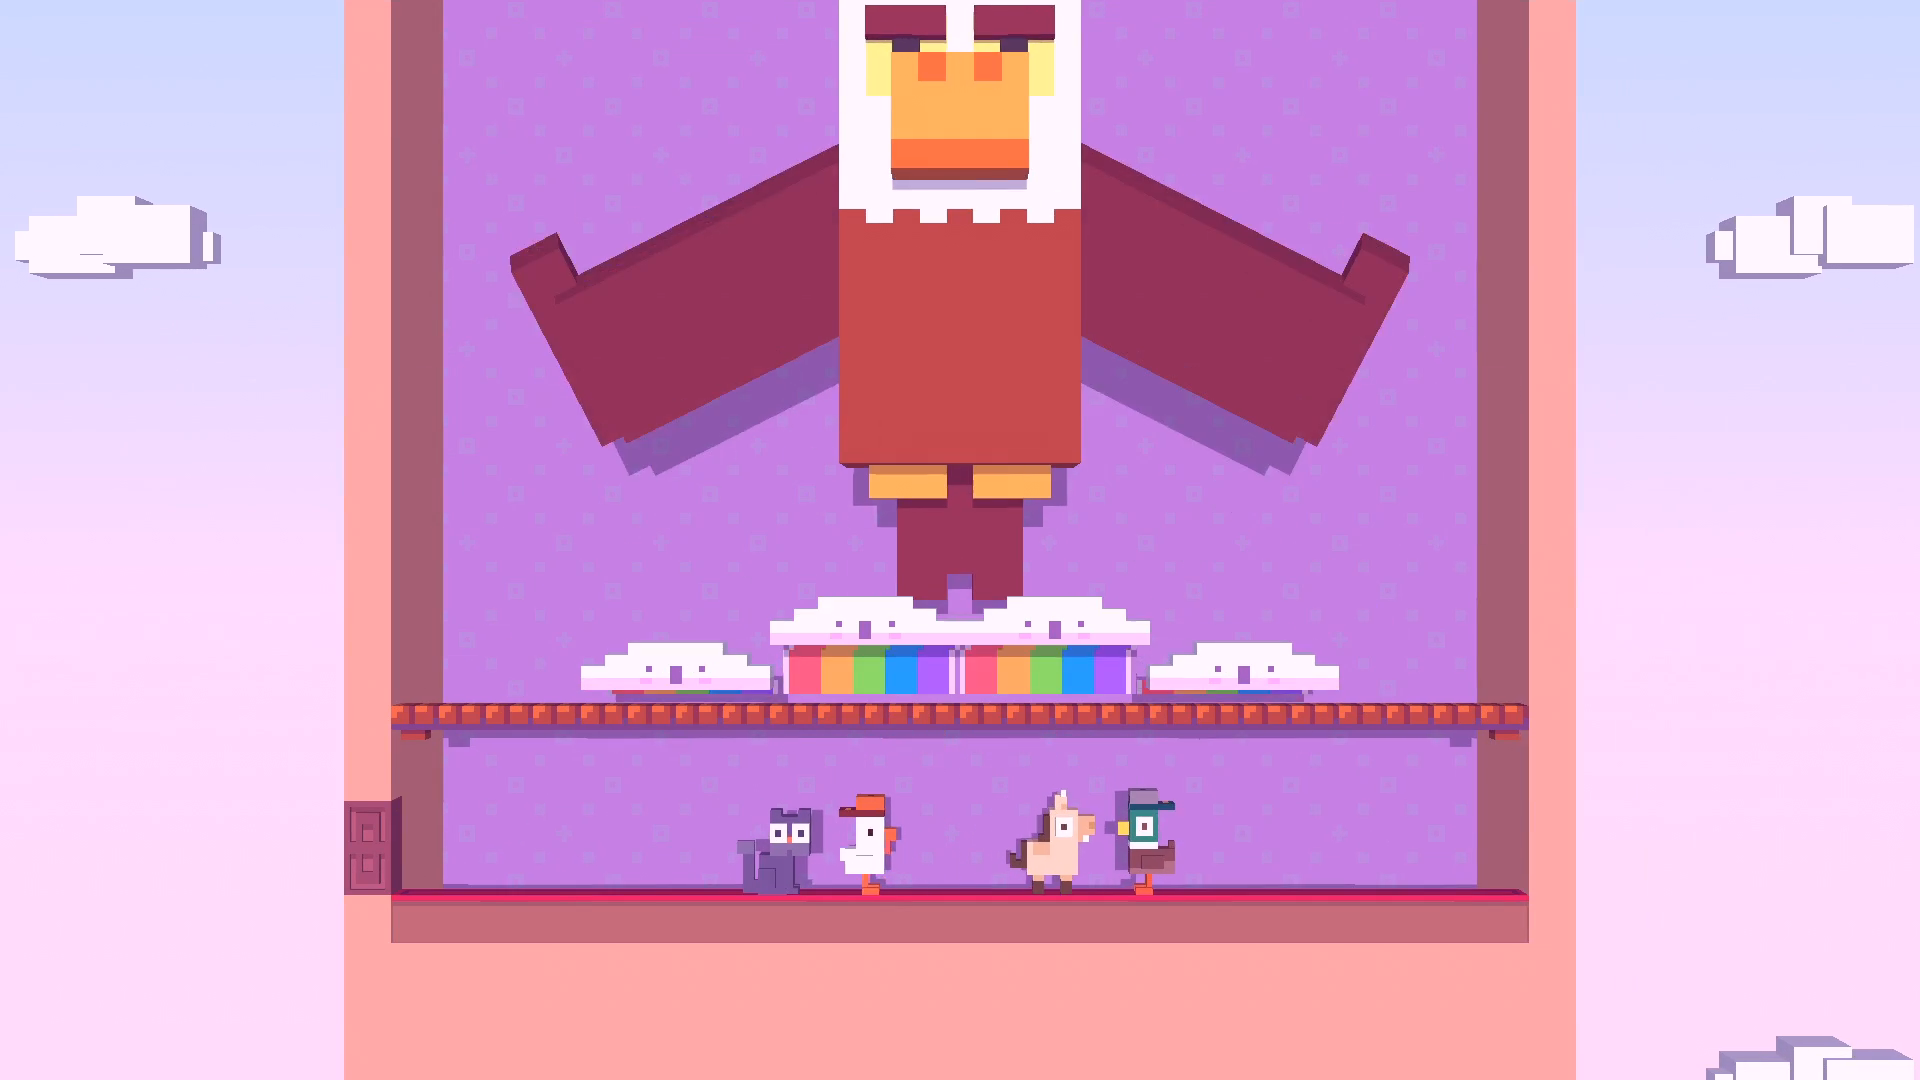 Crossy Road Castle screenshot featuring the eagle from the original Crossy Road standing over some critters